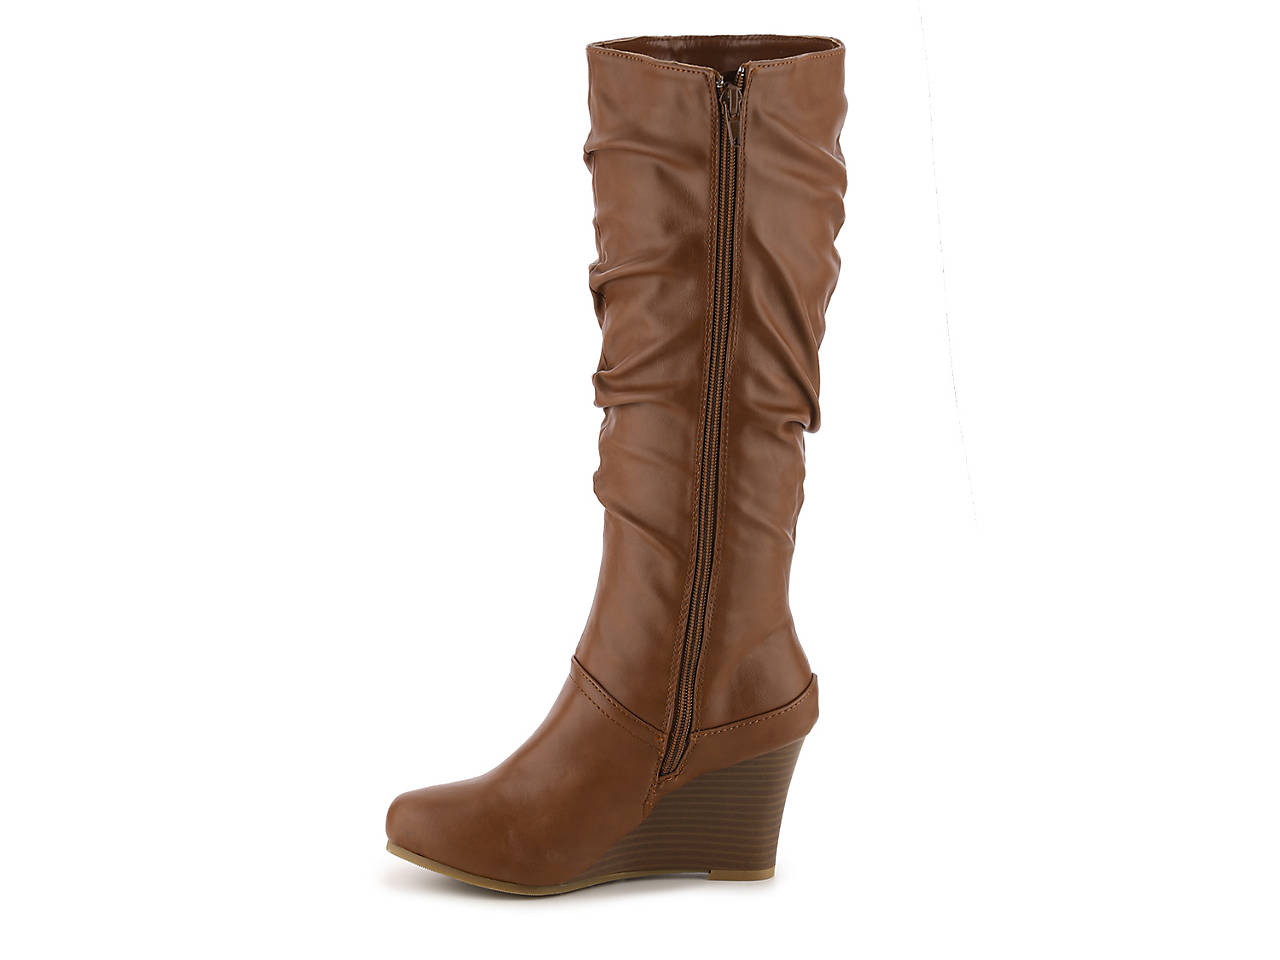 dee1f5bececc Journee Collection. Hana Wedge Boot. InStock.  59.99. Comp. value  100.00